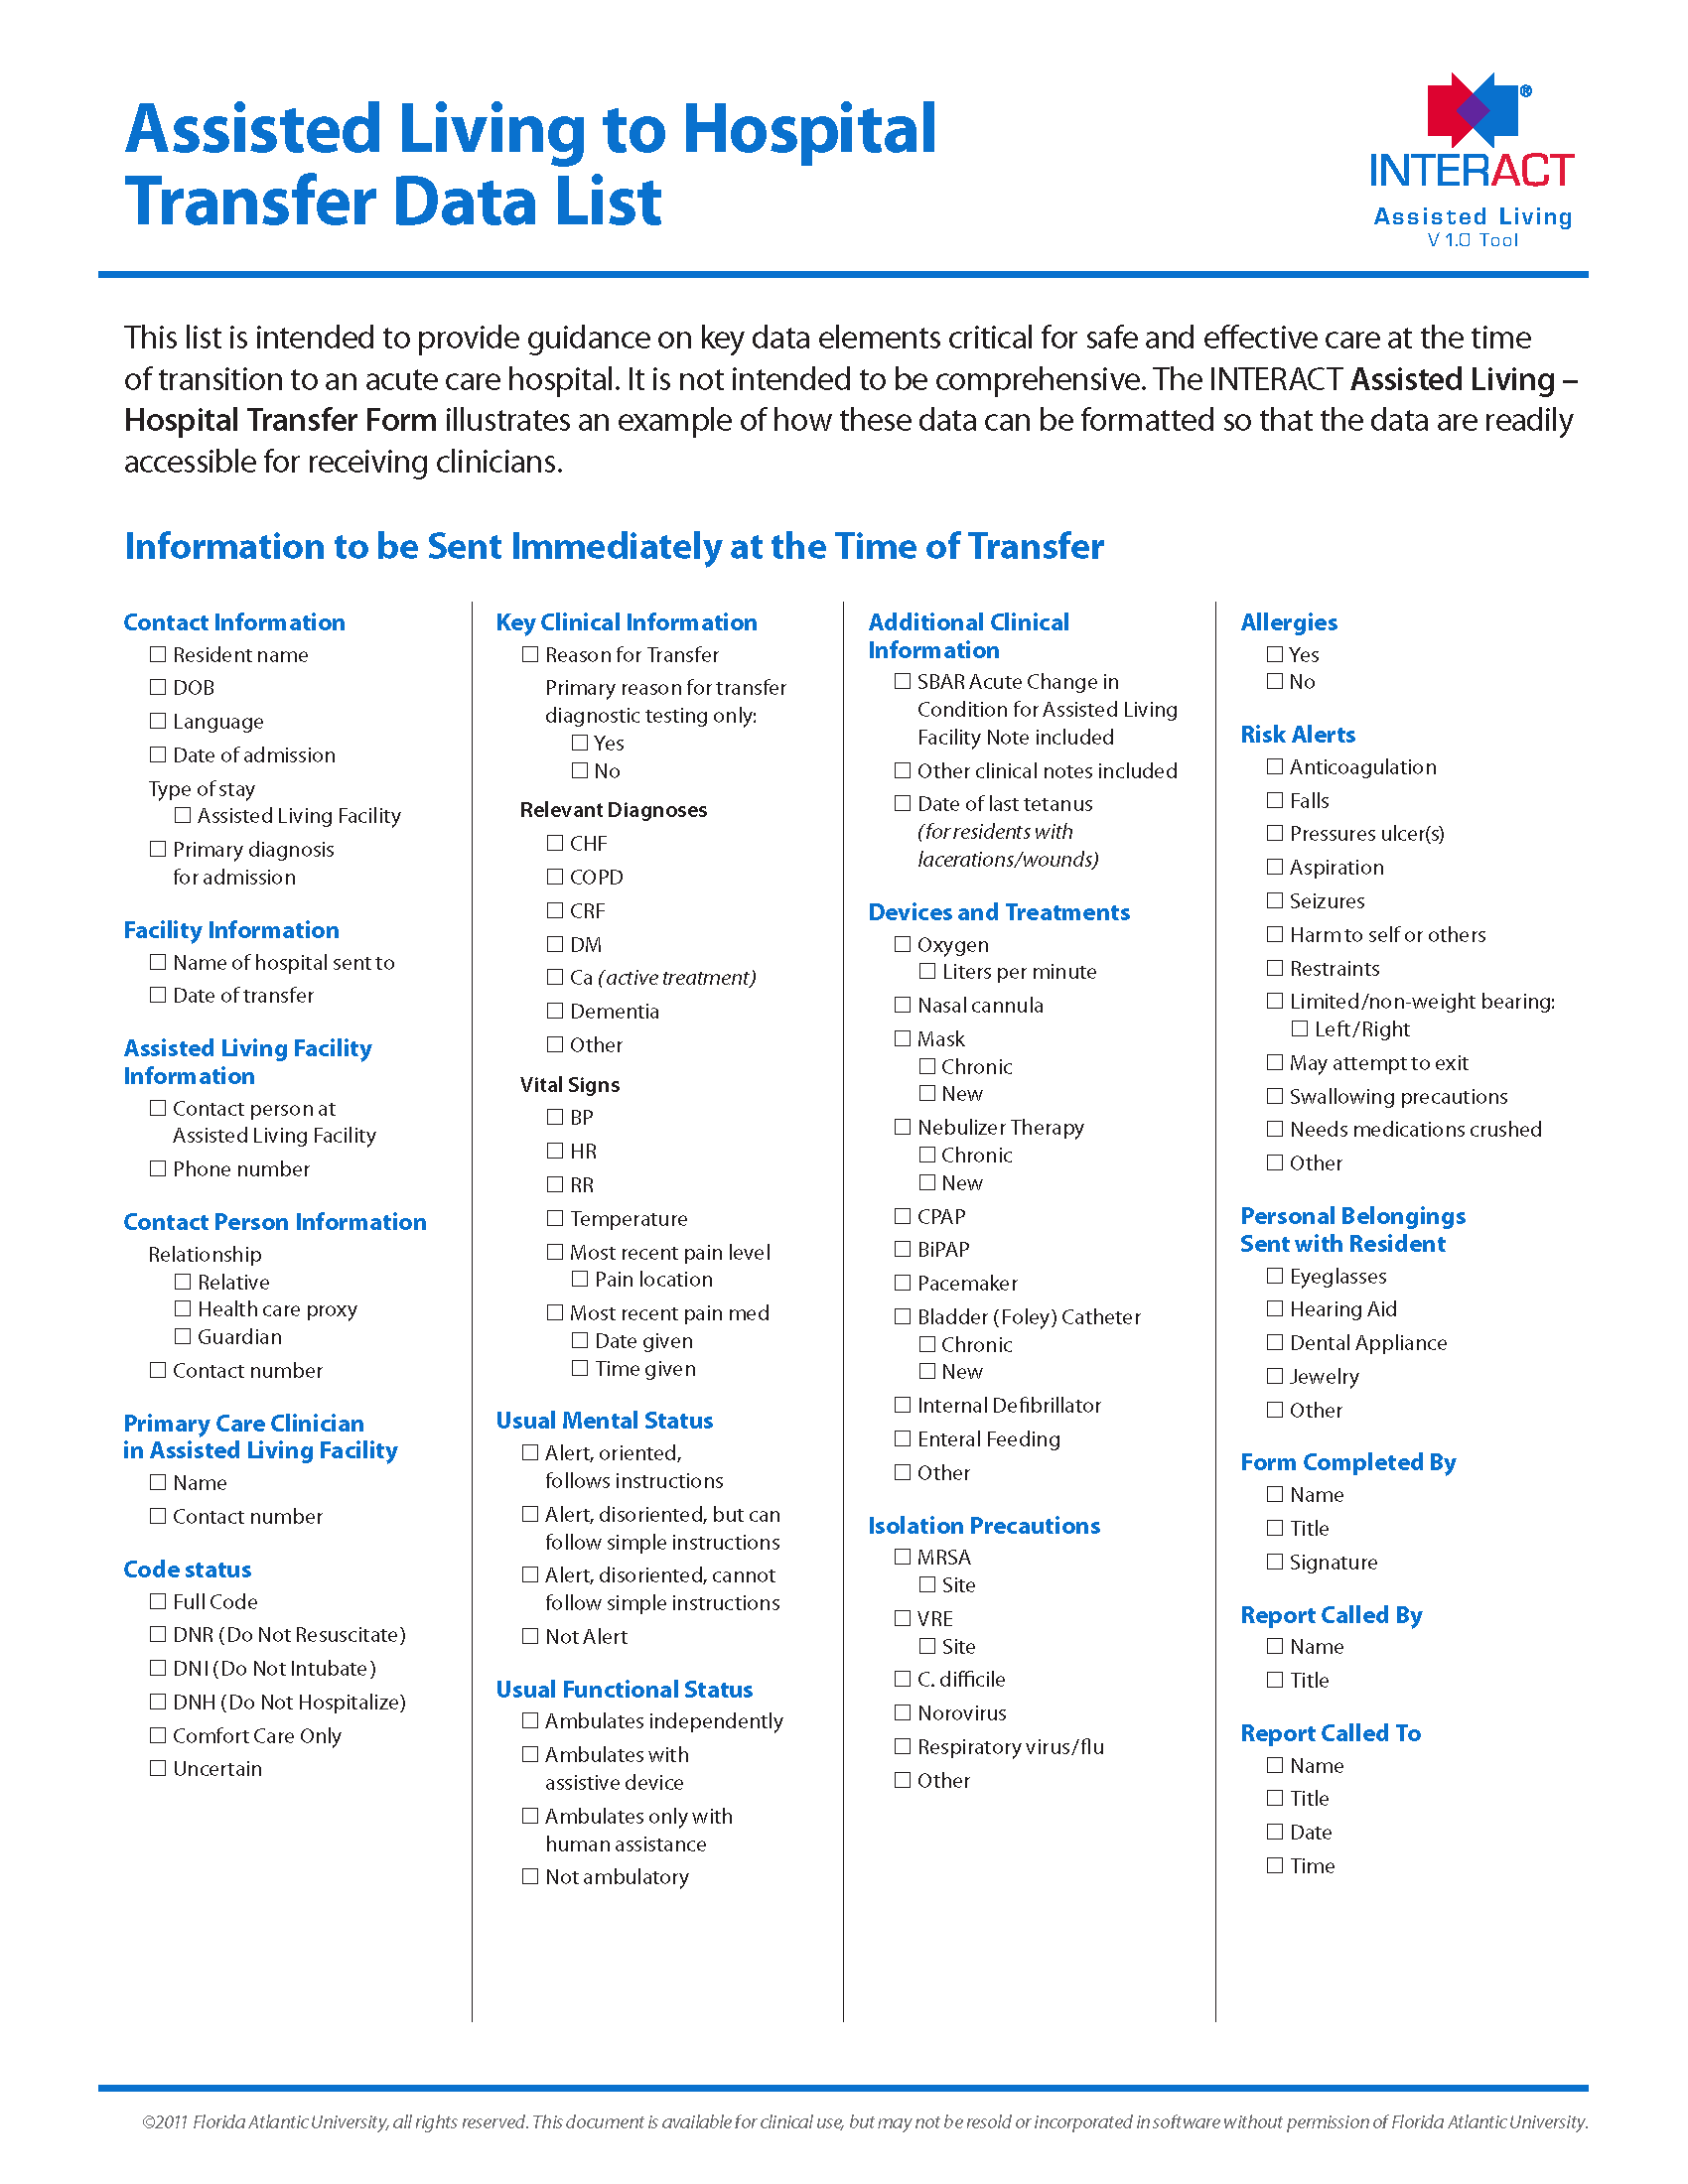 INTERACT Assisted Living to Hospital Transfer Data List